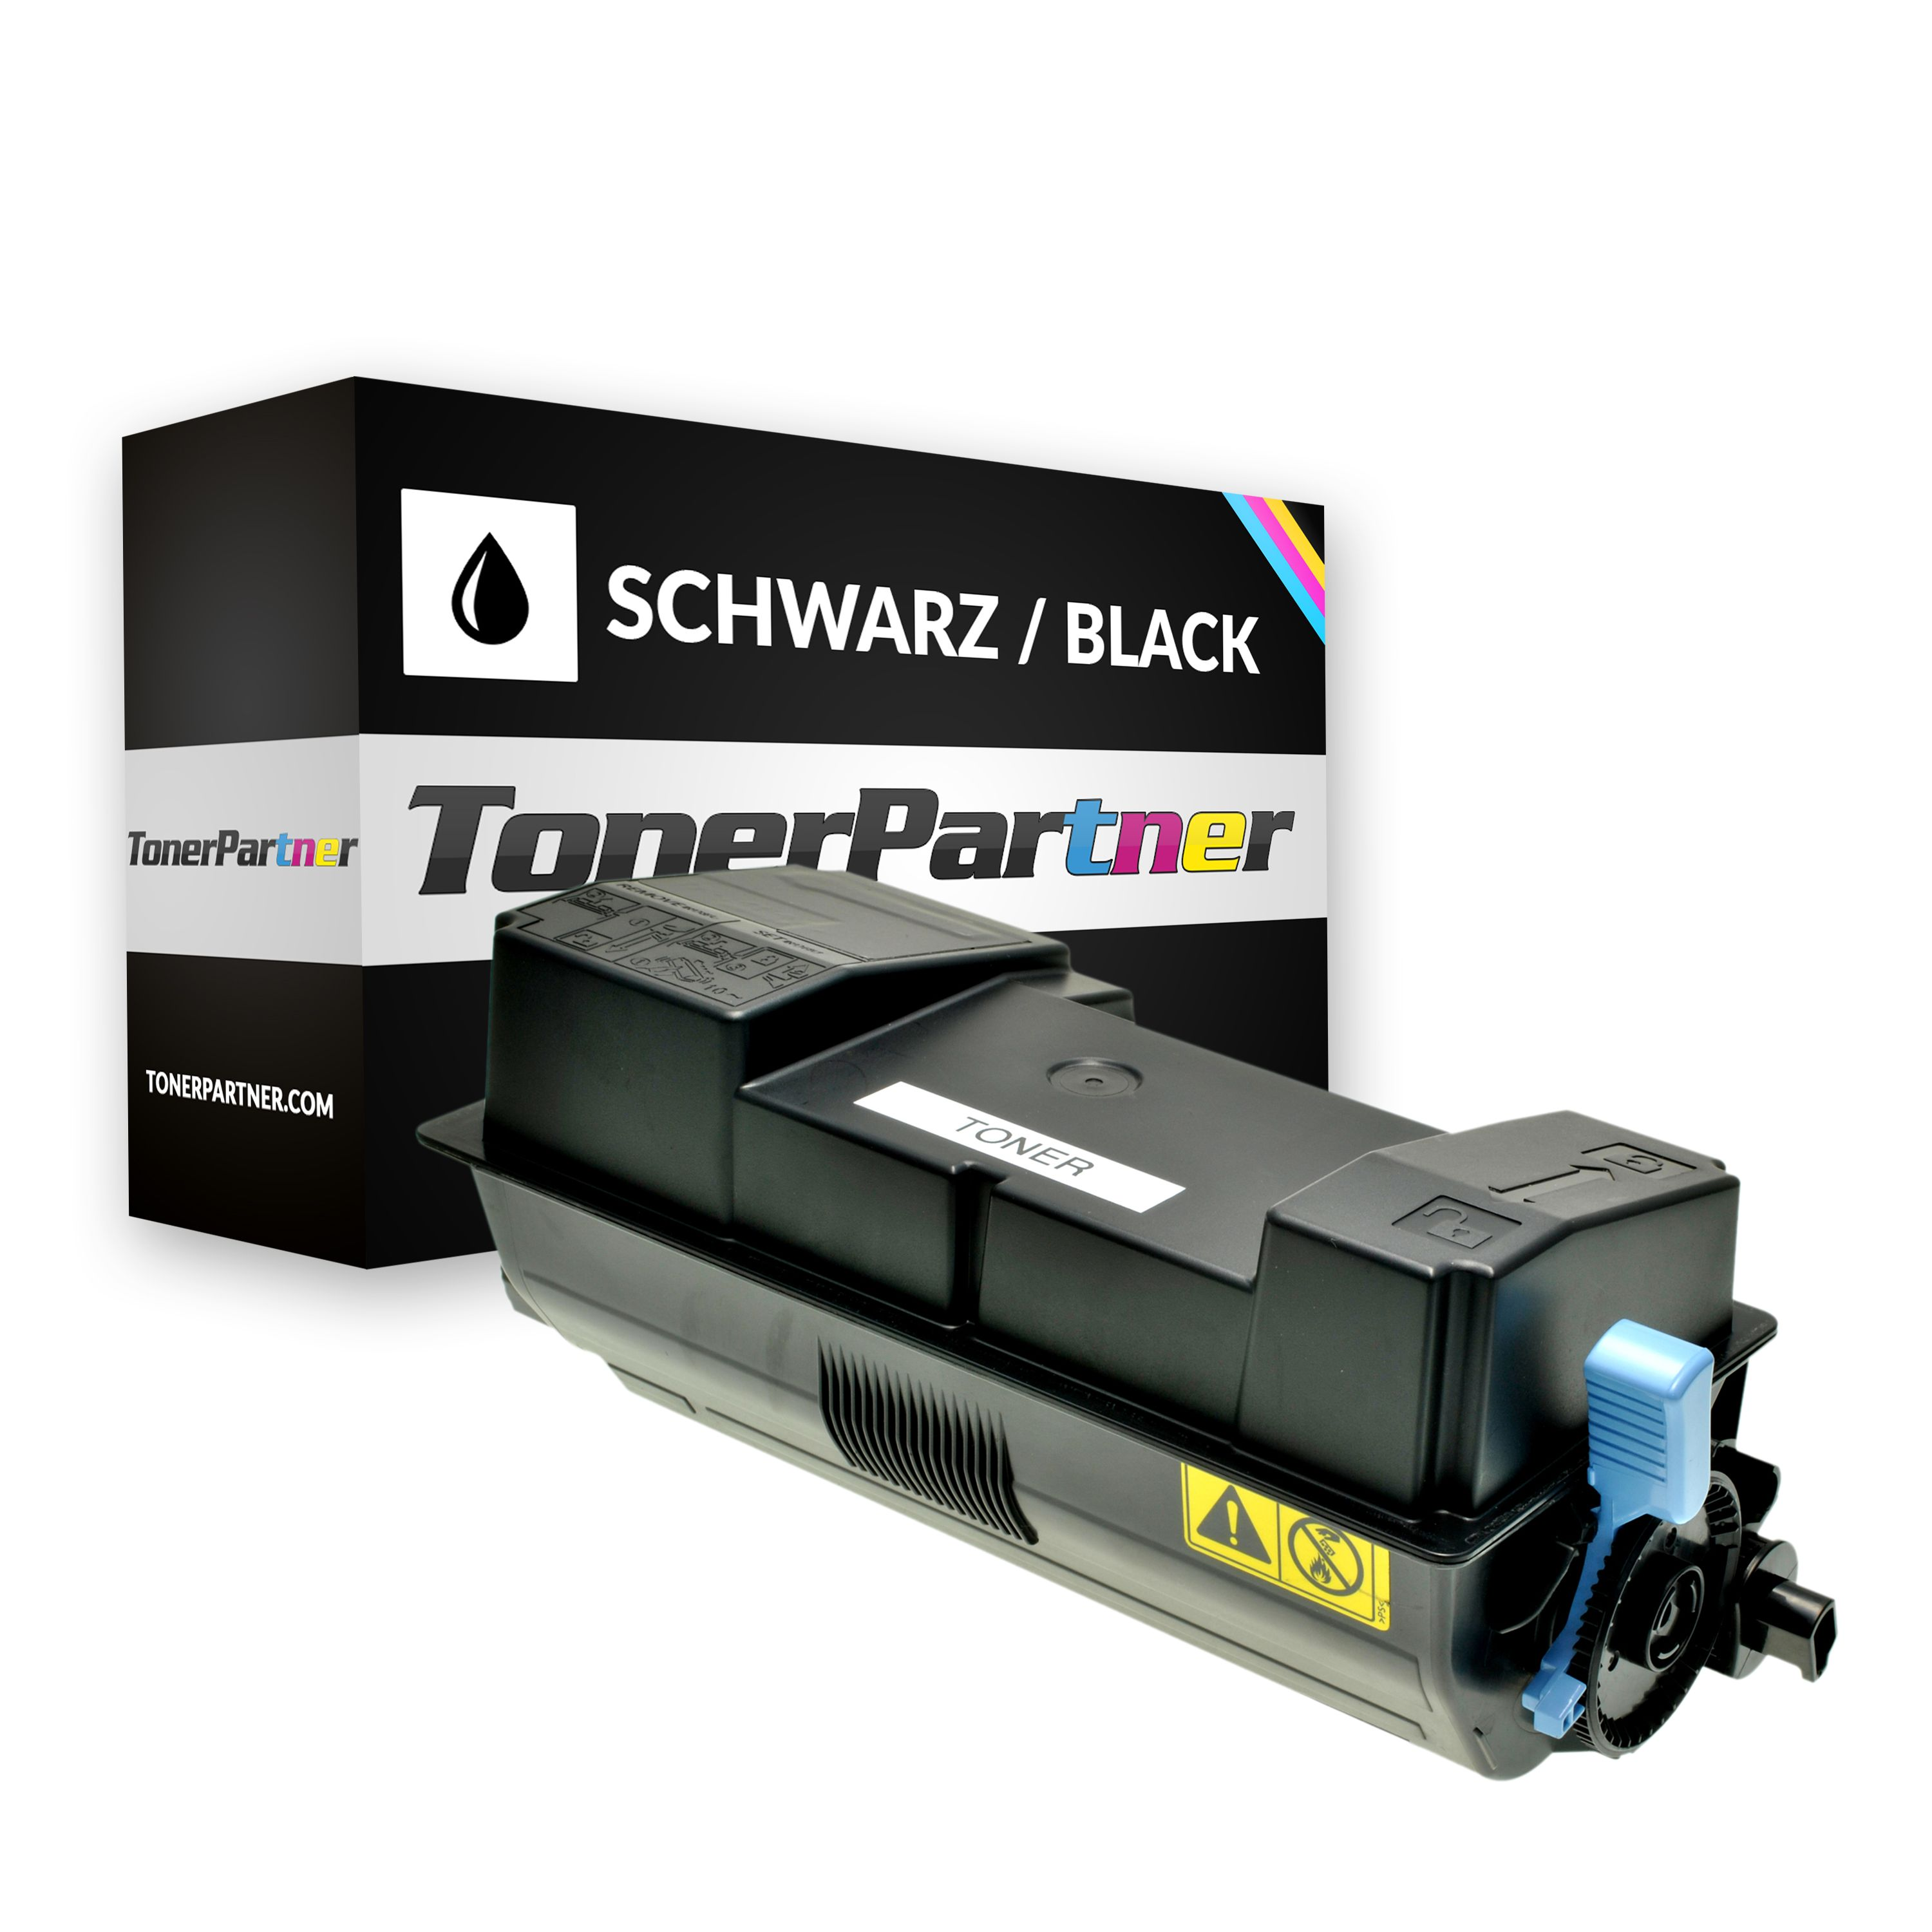 Compatible to Kyocera 1T02LV0NL0 / TK3130 Toner black